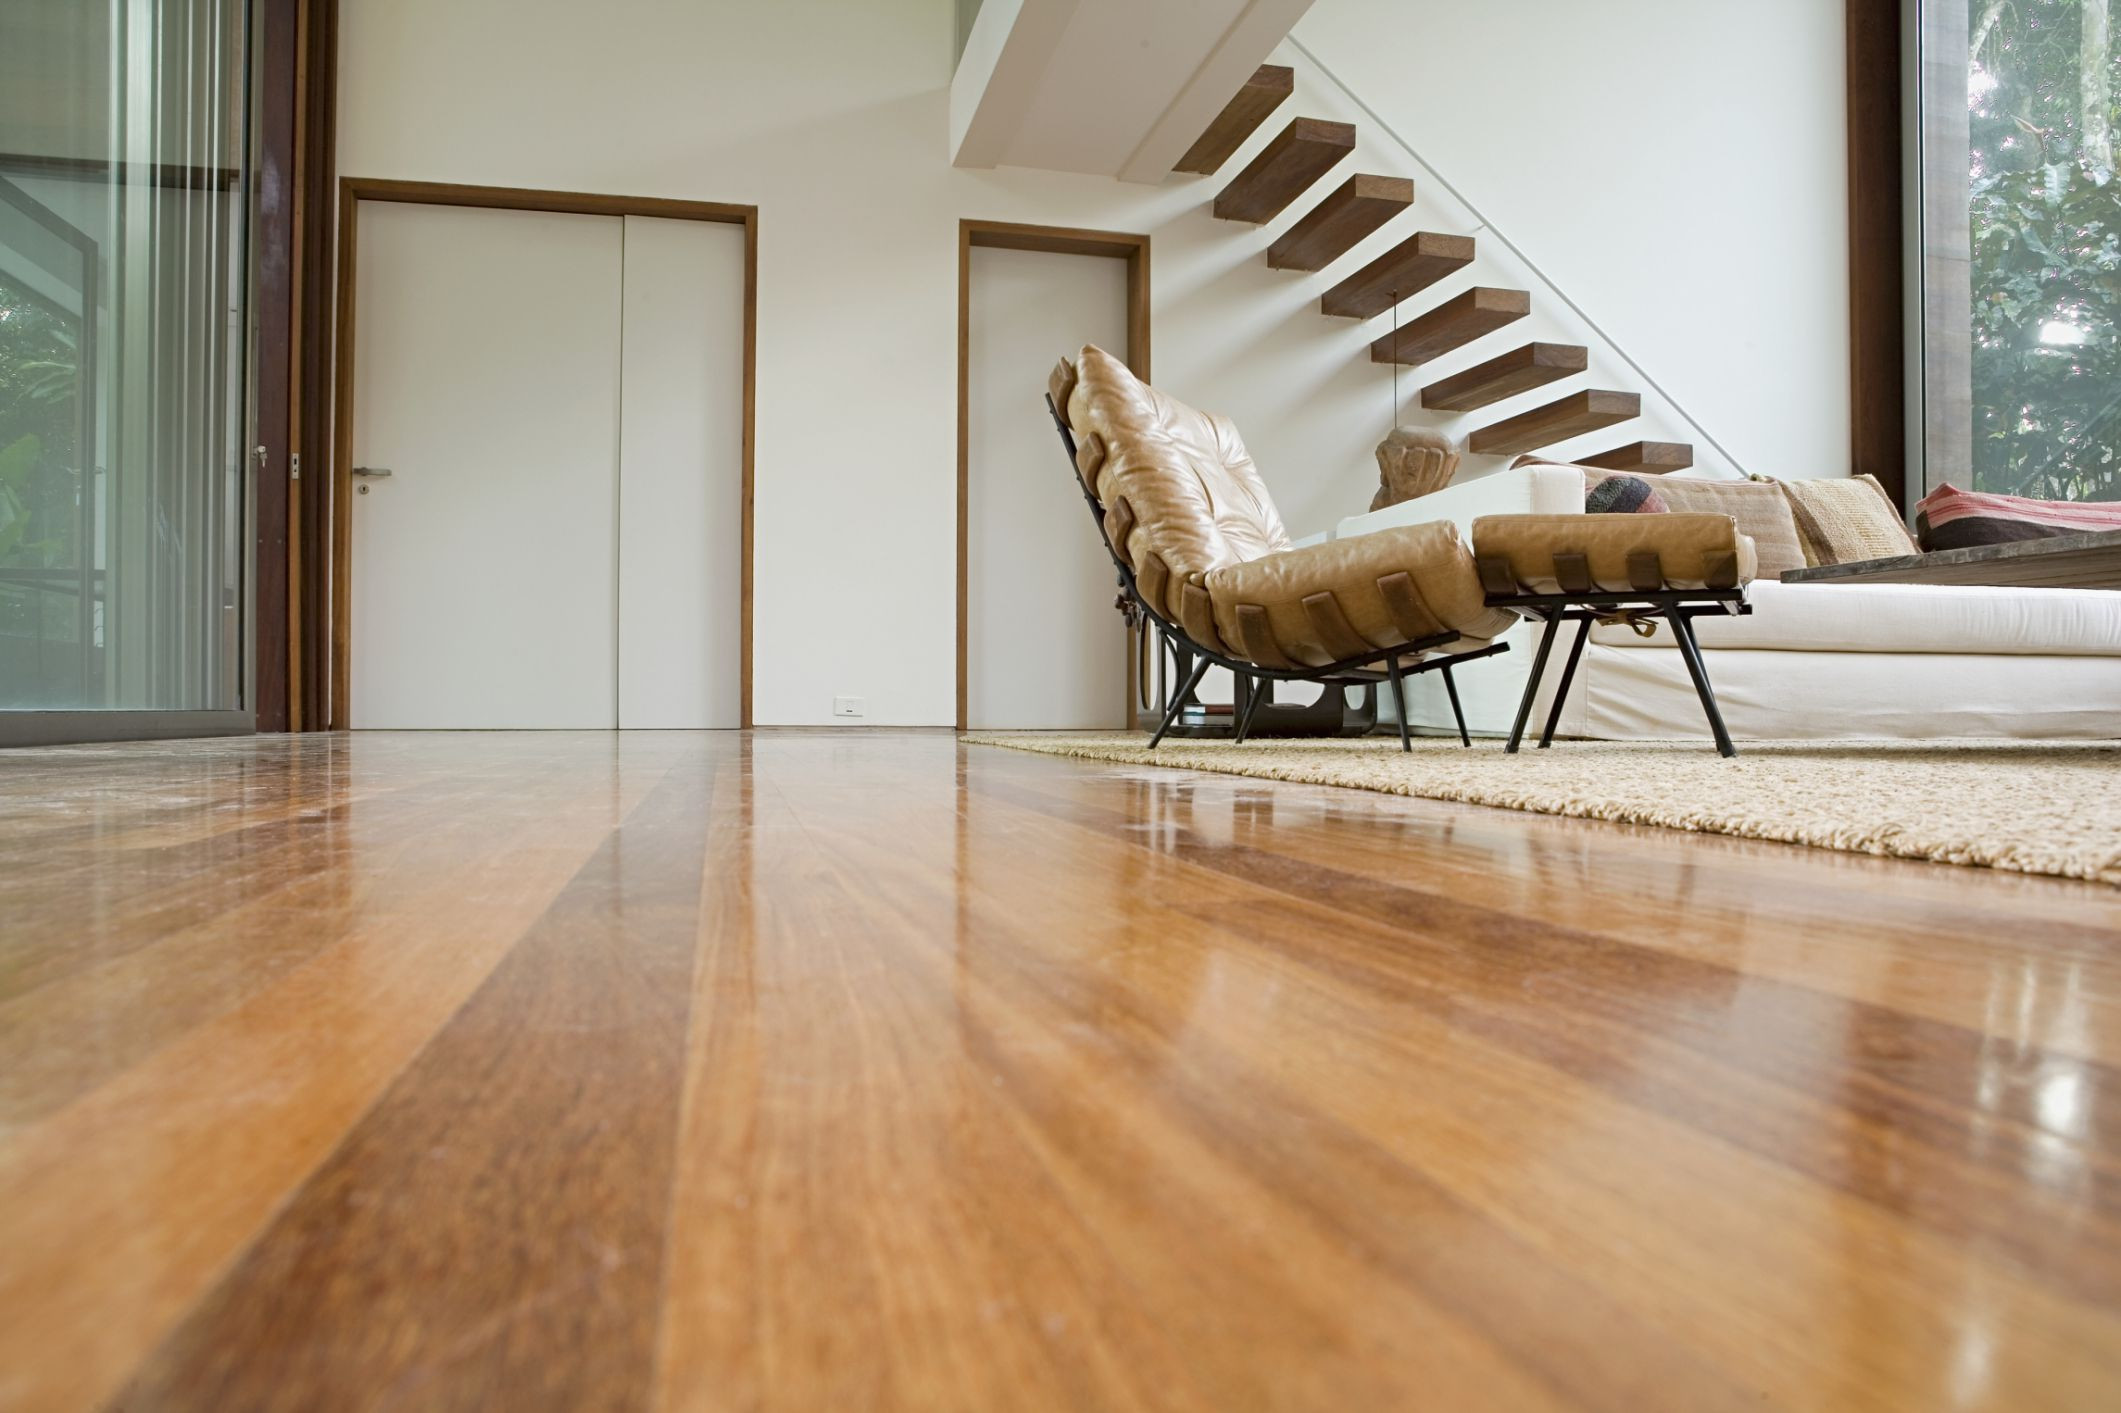 most popular engineered hardwood flooring color of engineered wood flooring vs solid wood flooring intended for 200571260 001 highres 56a49dec5f9b58b7d0d7dc1e